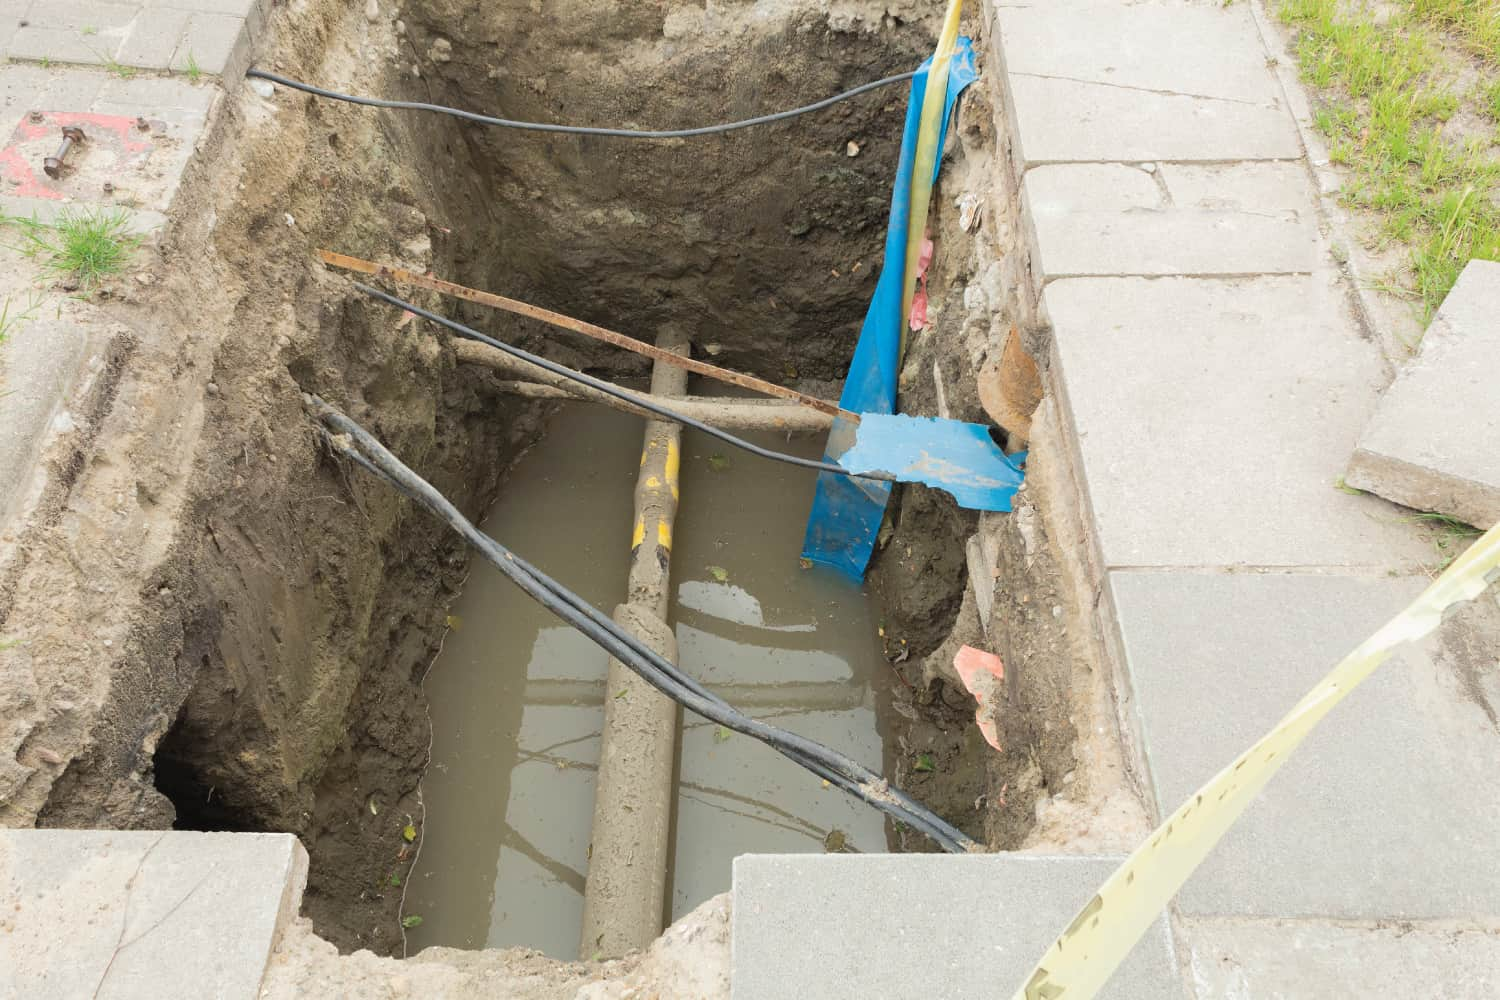 trench water with pipes and wires